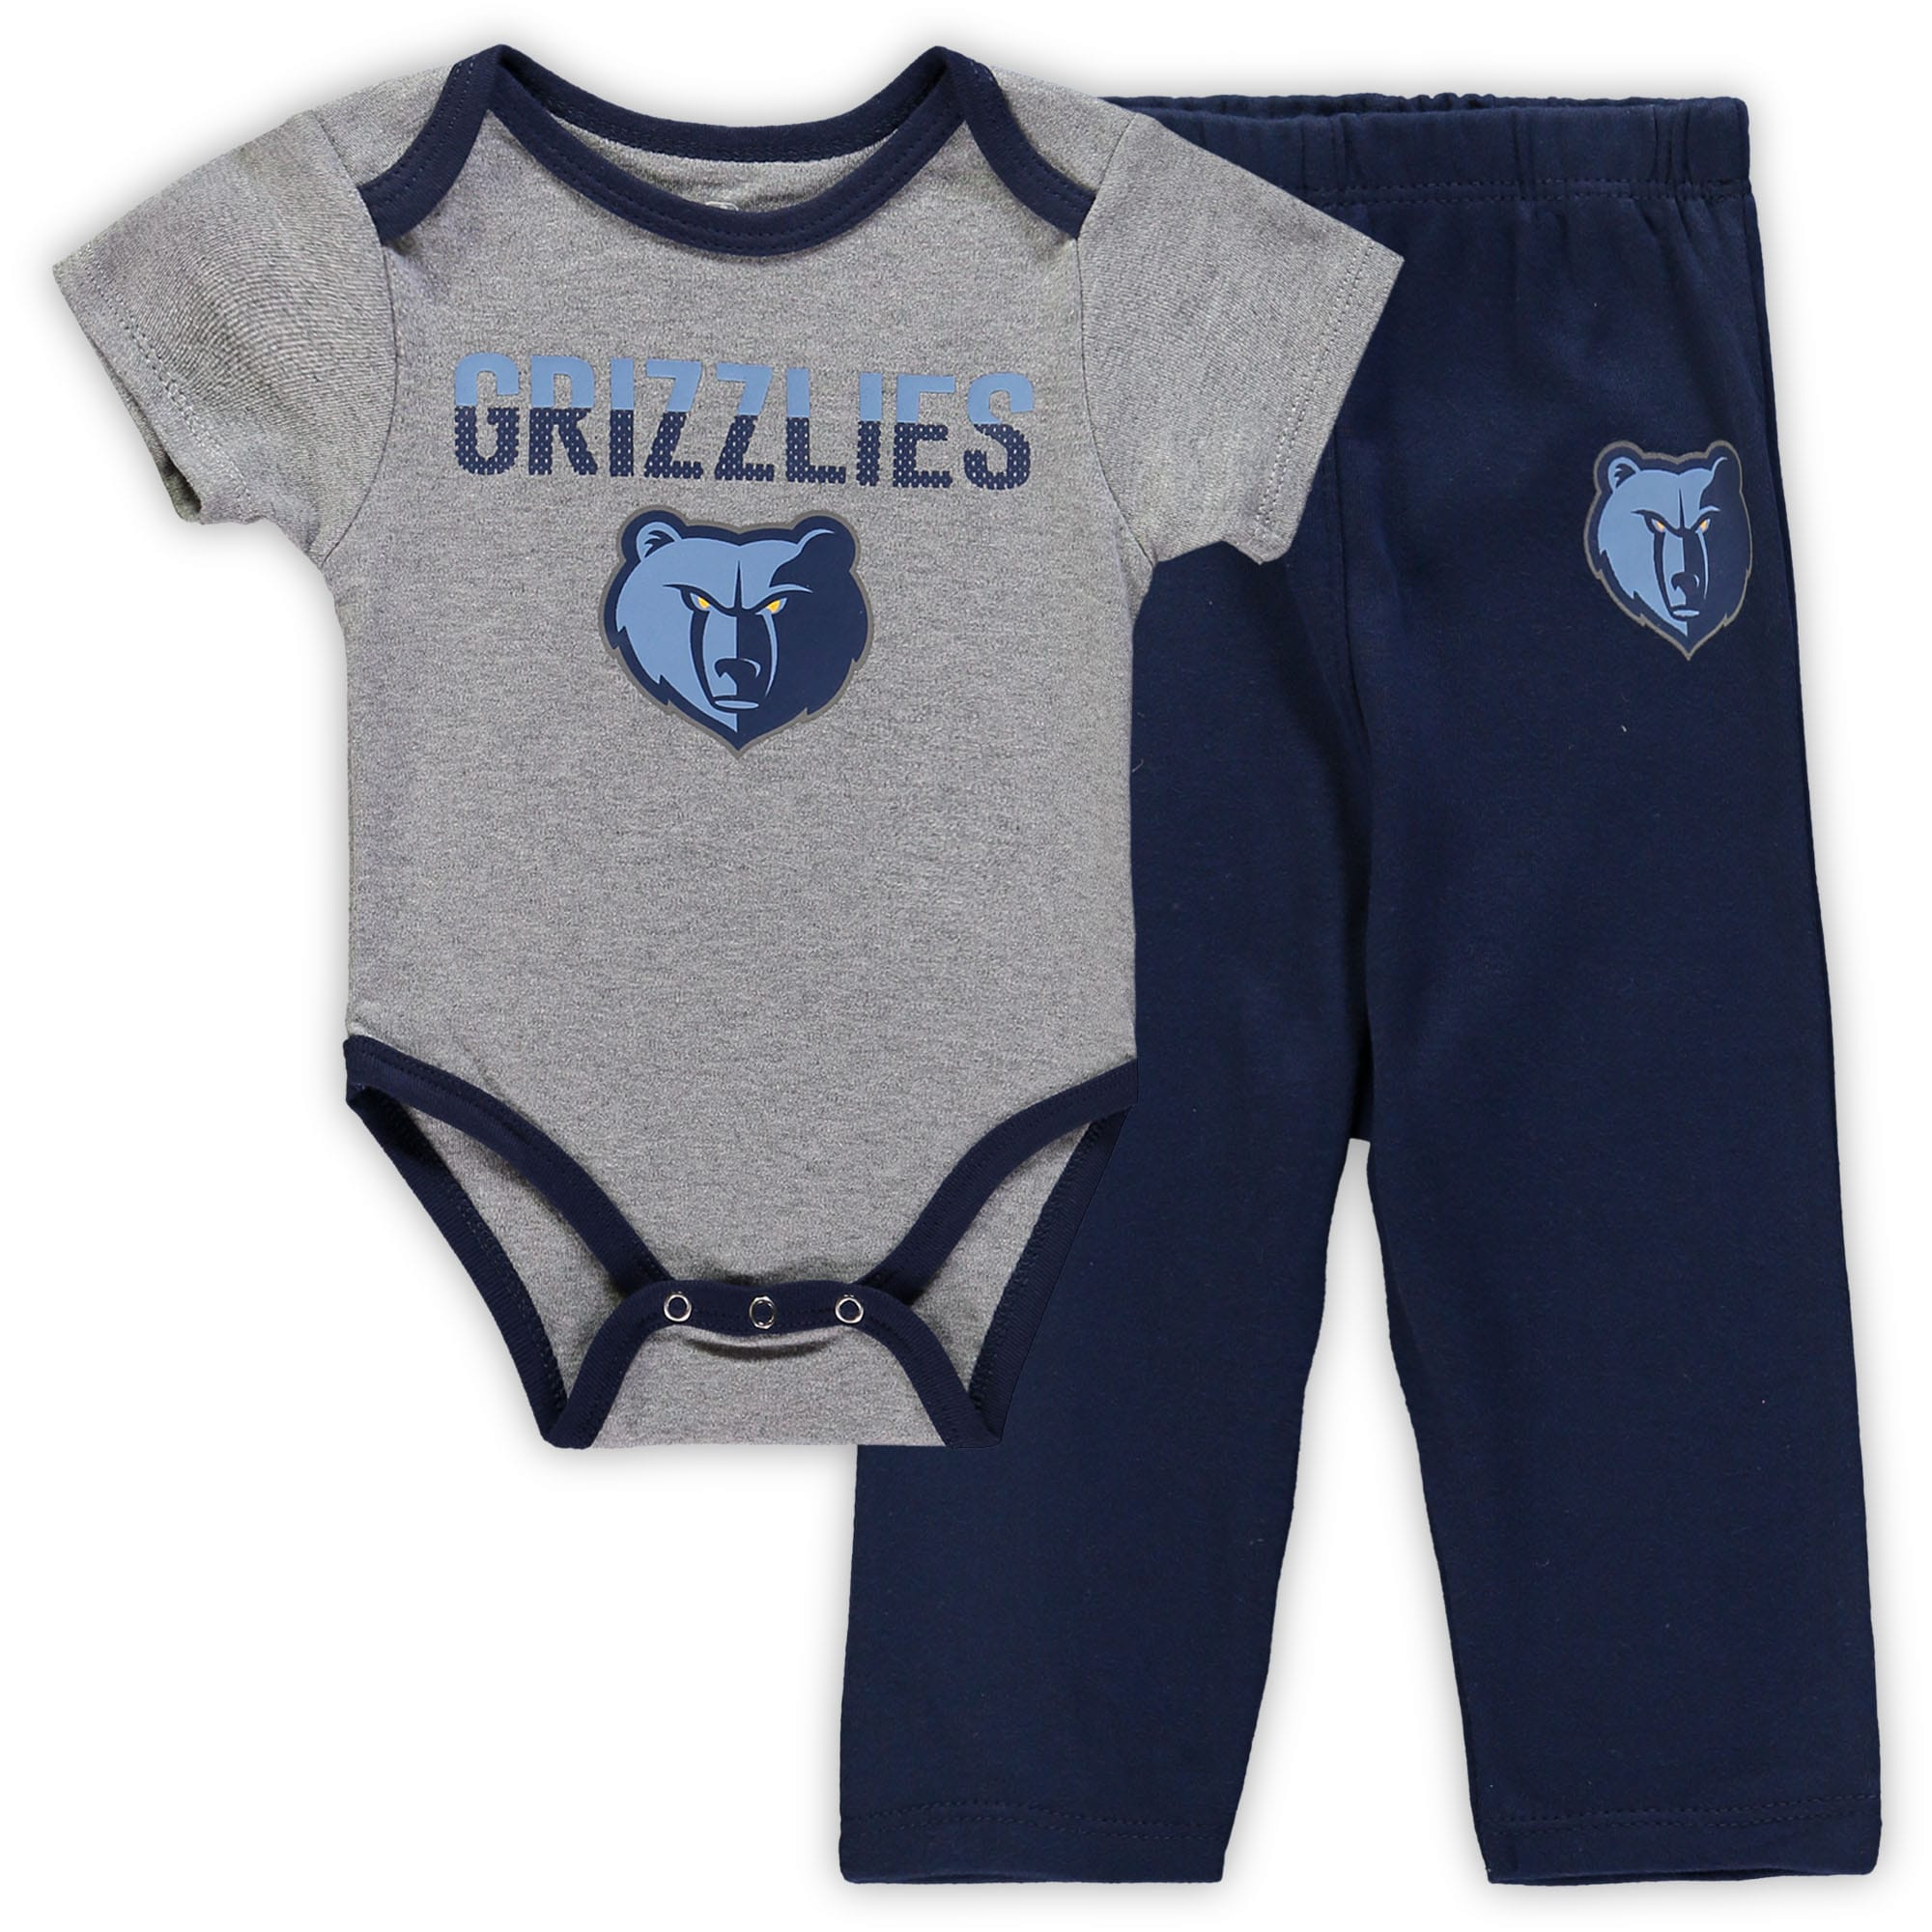 Memphis Grizzlies Newborn & Infant Pointguard Bodysuit and Pants Set - Heathered Gray/Navy